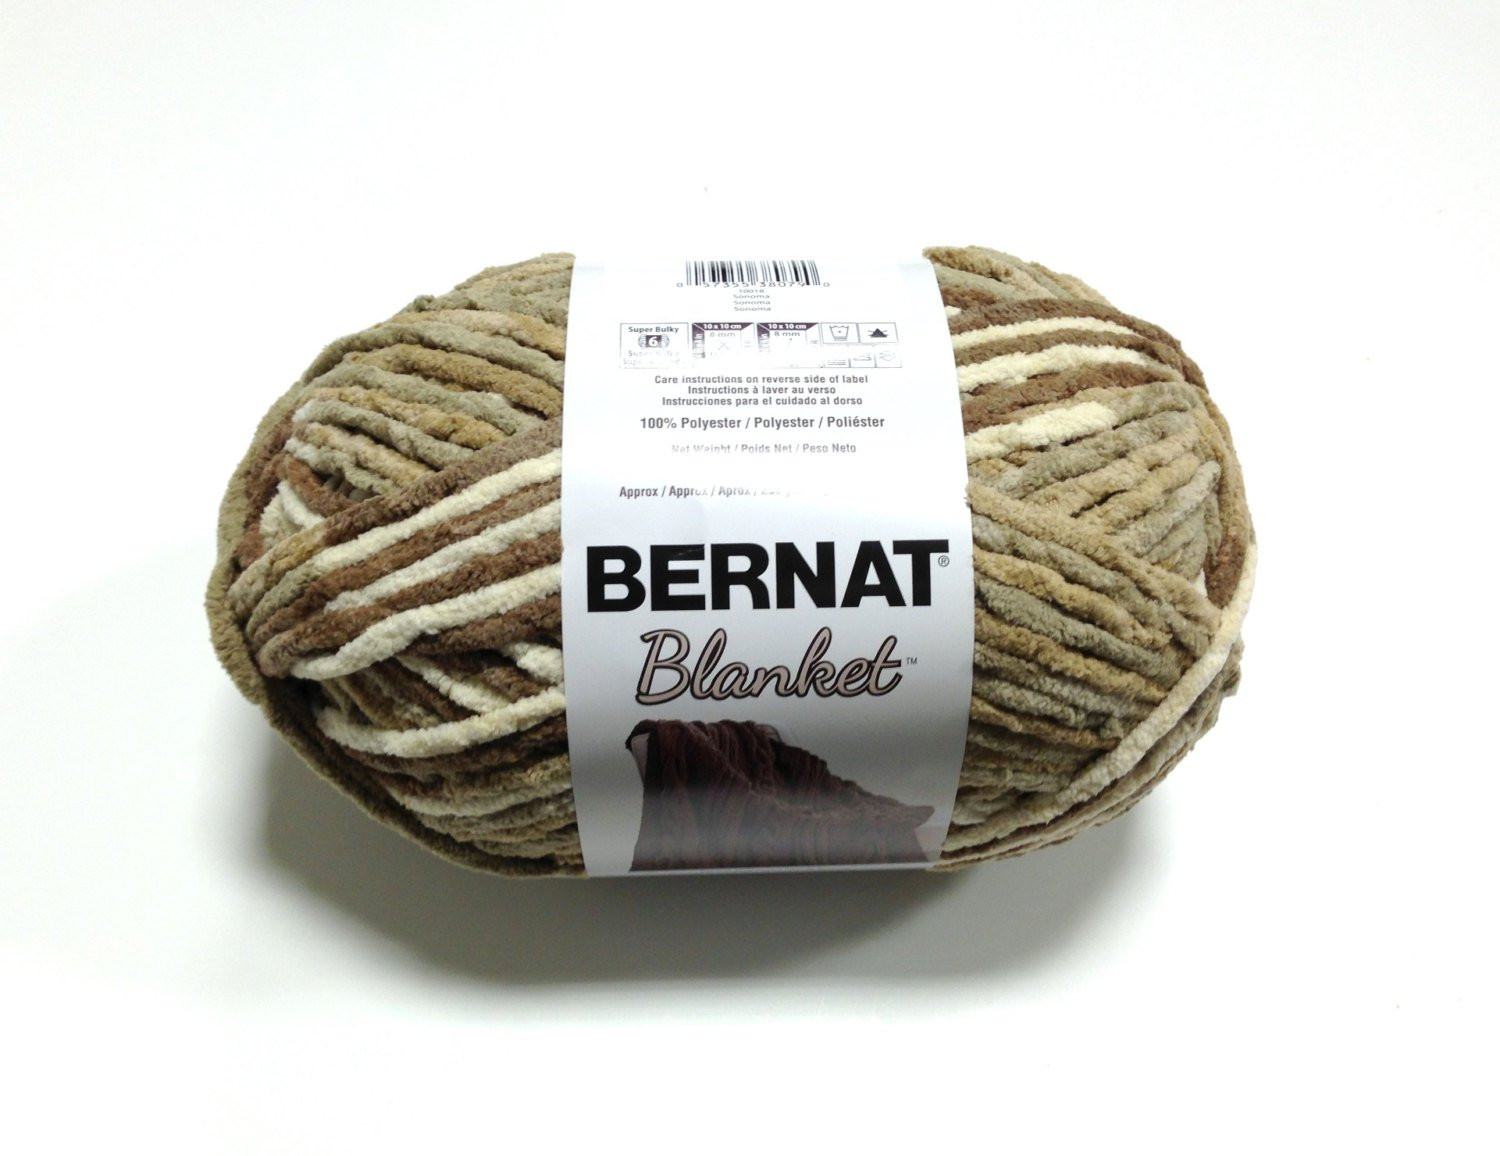 Bernat Blanket Yarn Fresh Bernat Blanket Yarn In sonoma Skein by Of Beautiful 42 Models Bernat Blanket Yarn